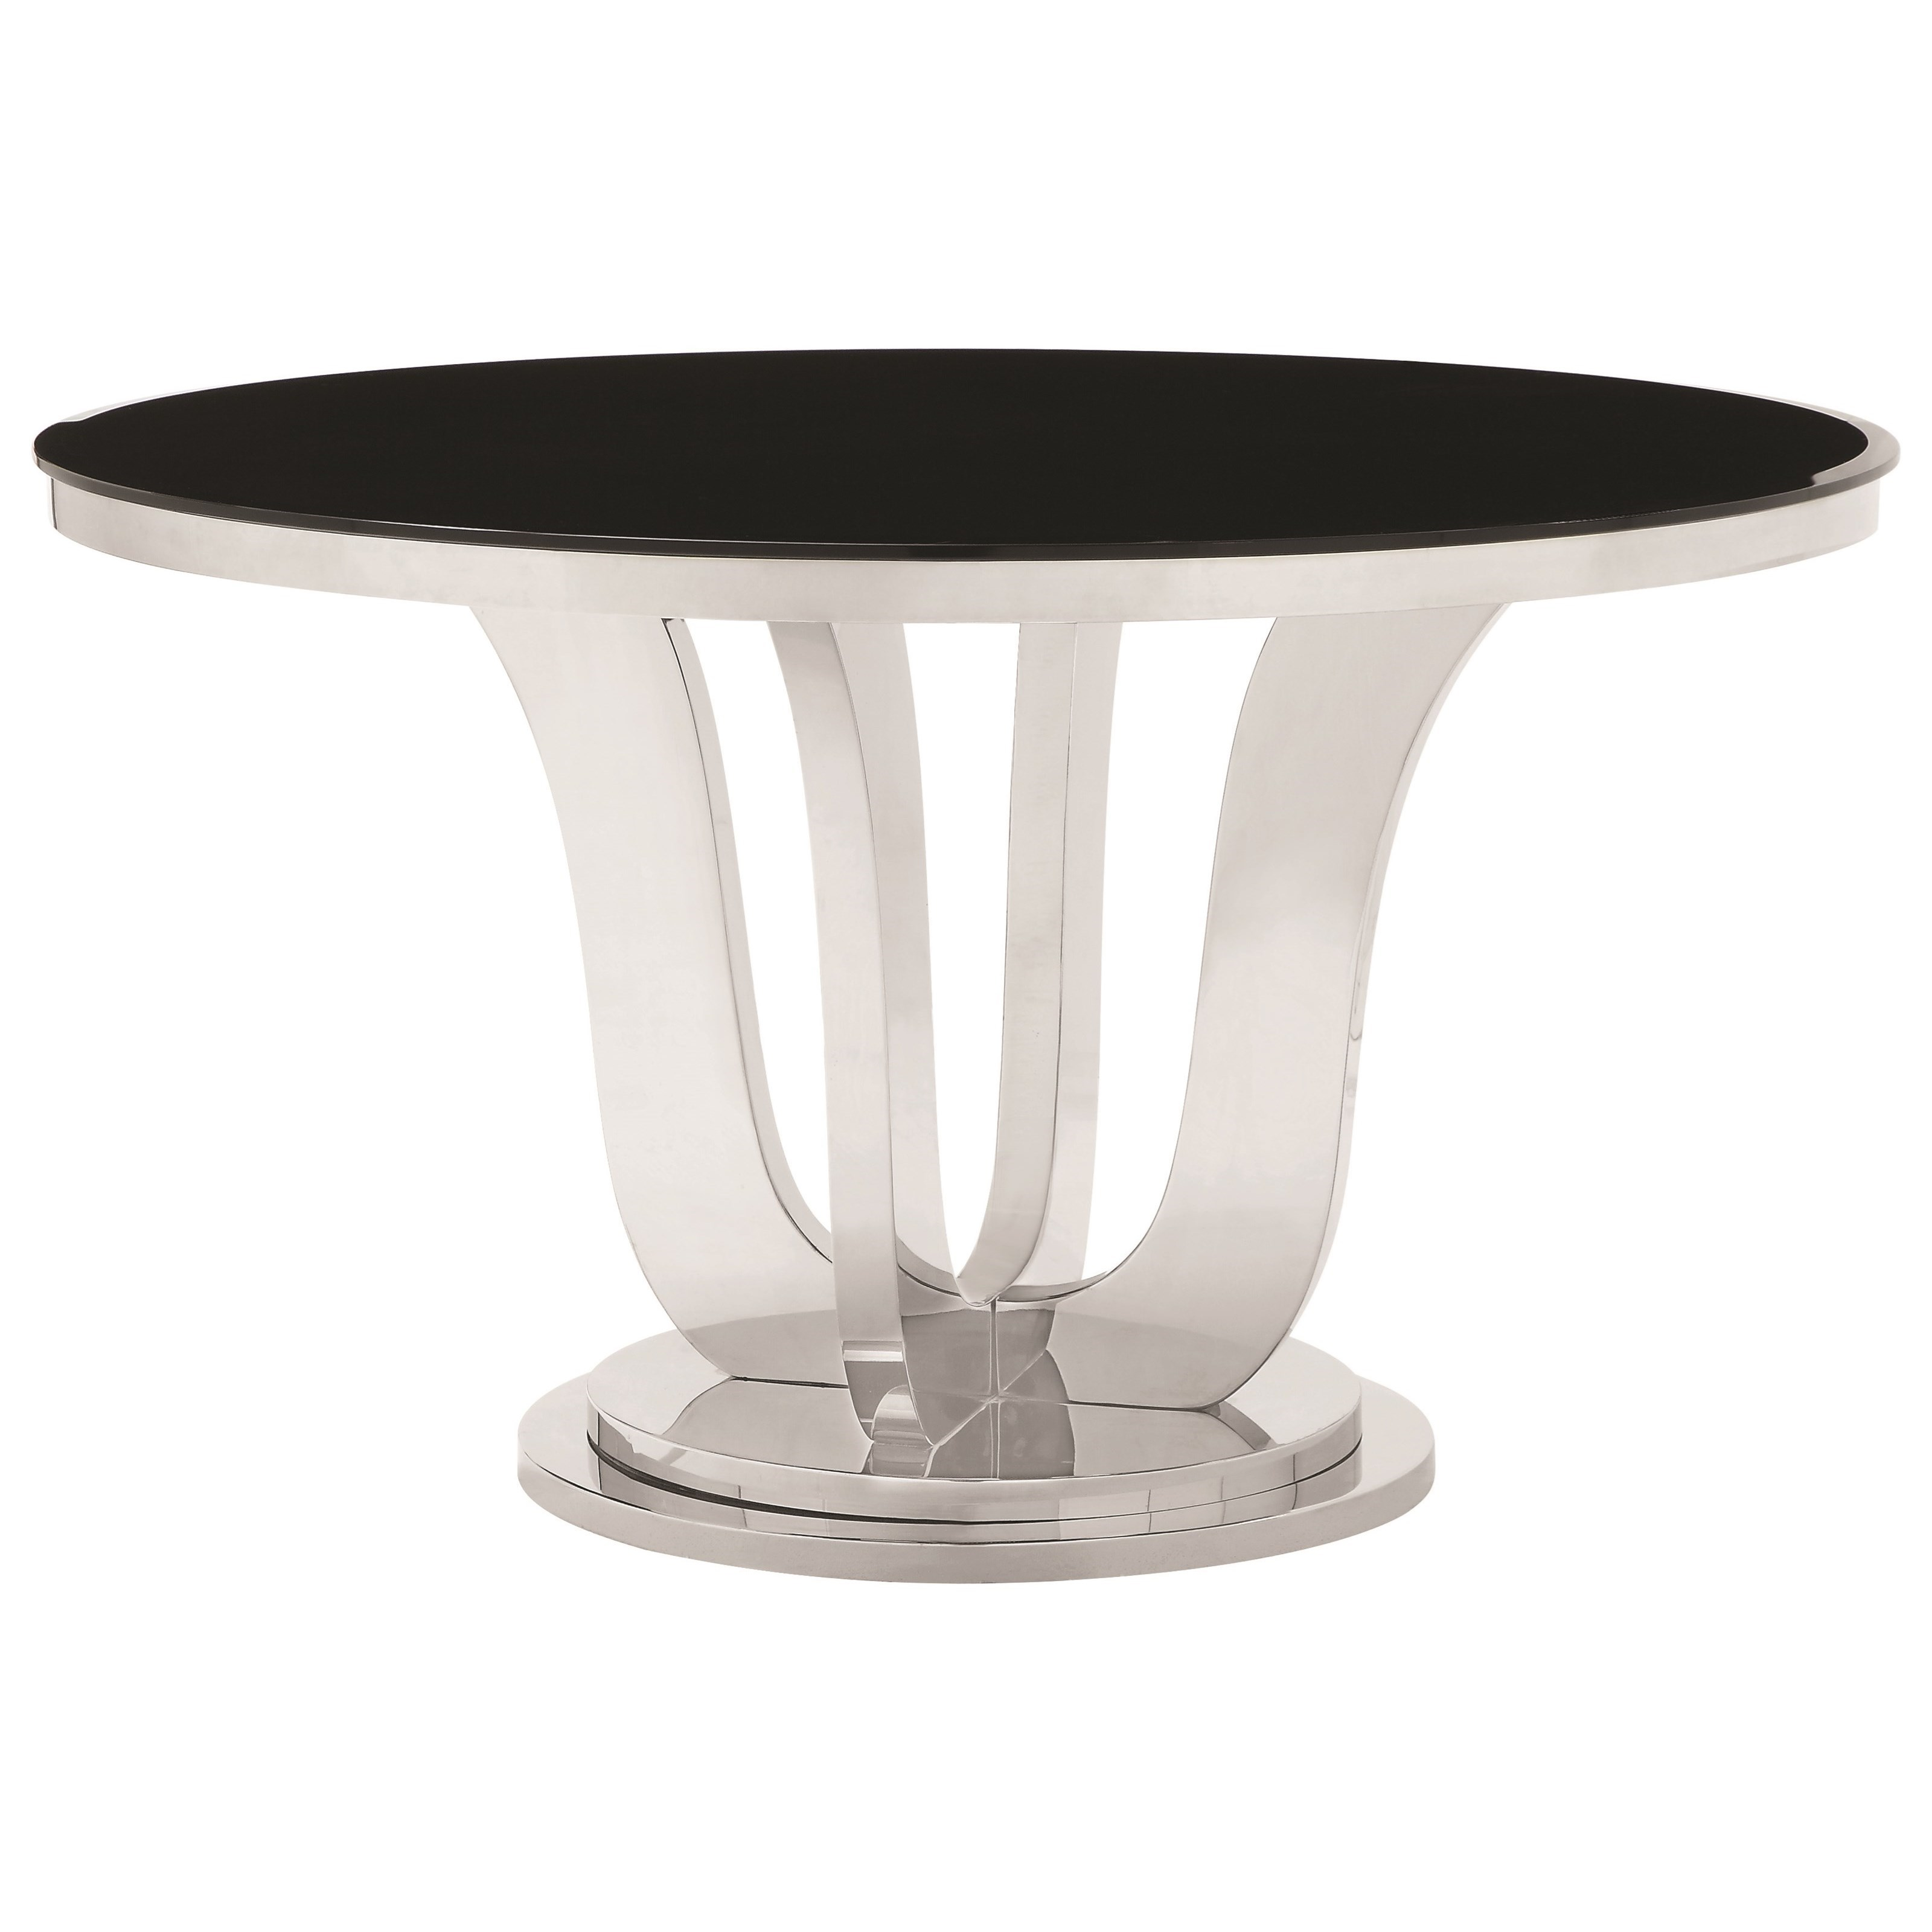 Coaster blasio 107881 glam round dining table with black for Glam dining table